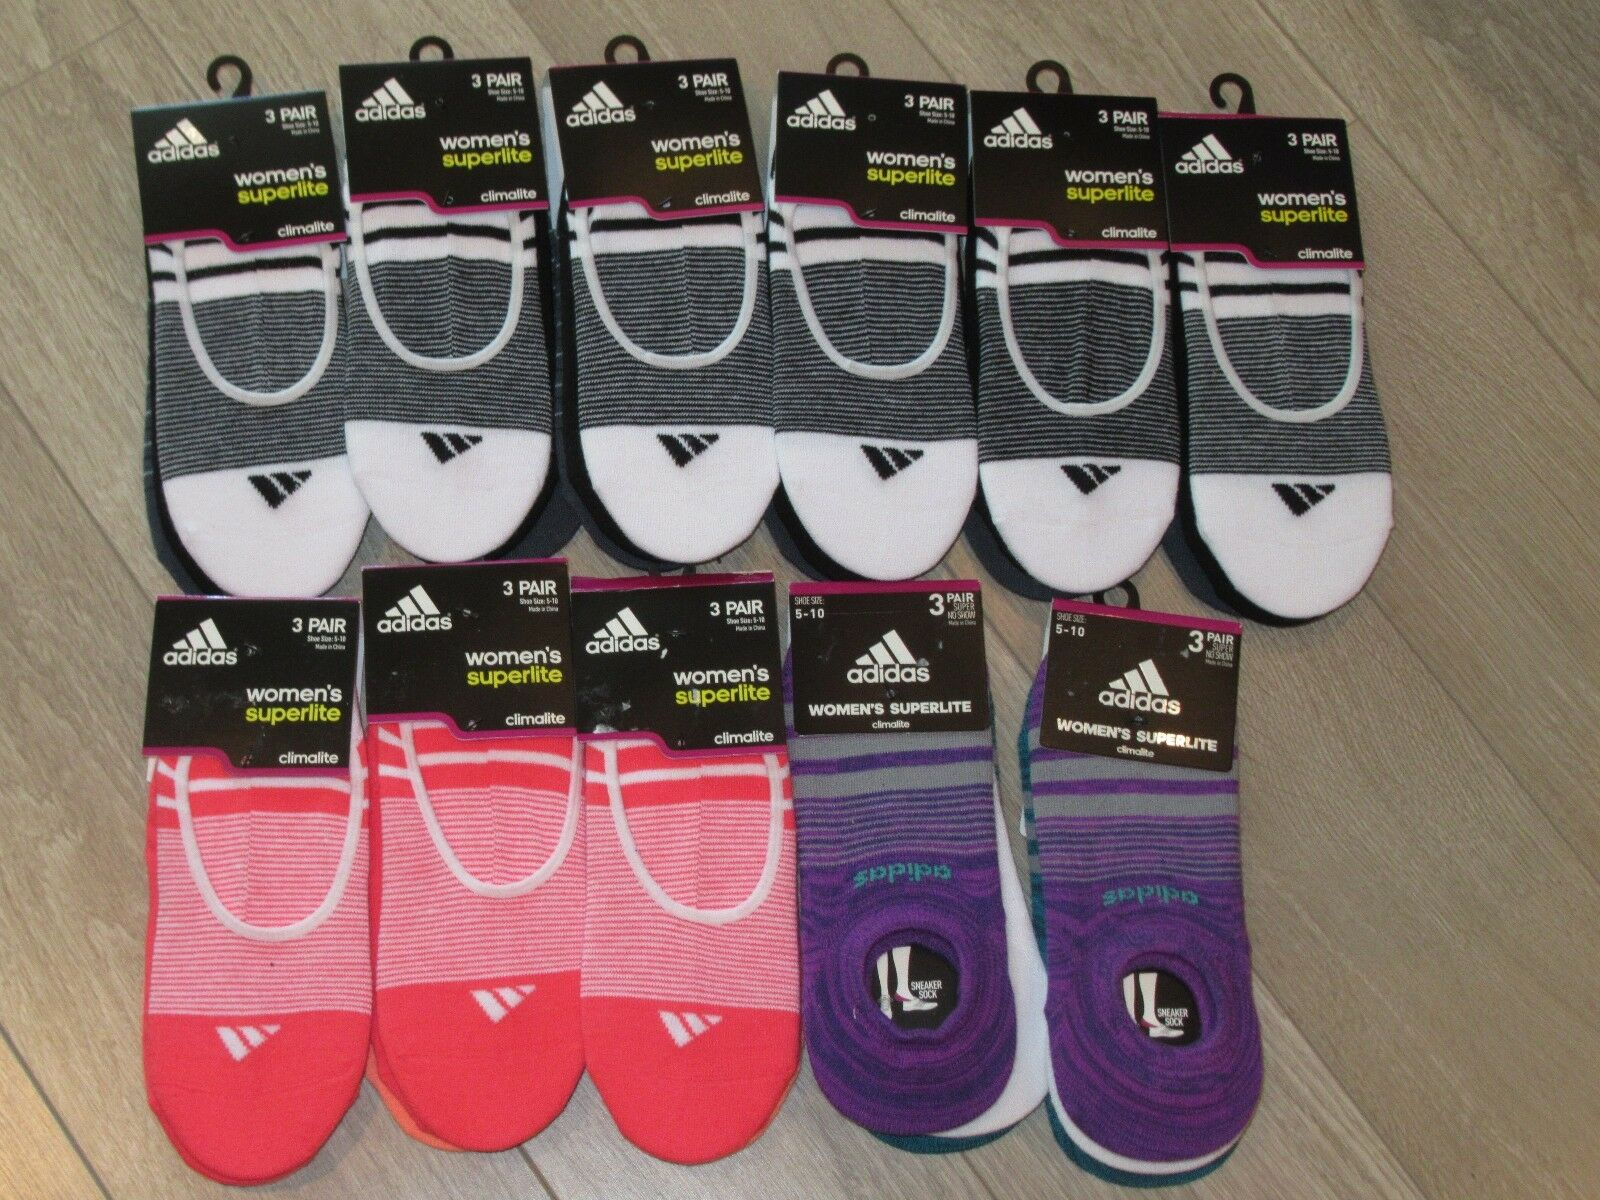 Adidas Superlite Climalite Womens No Show Socken ~~ 33 Paar ~~